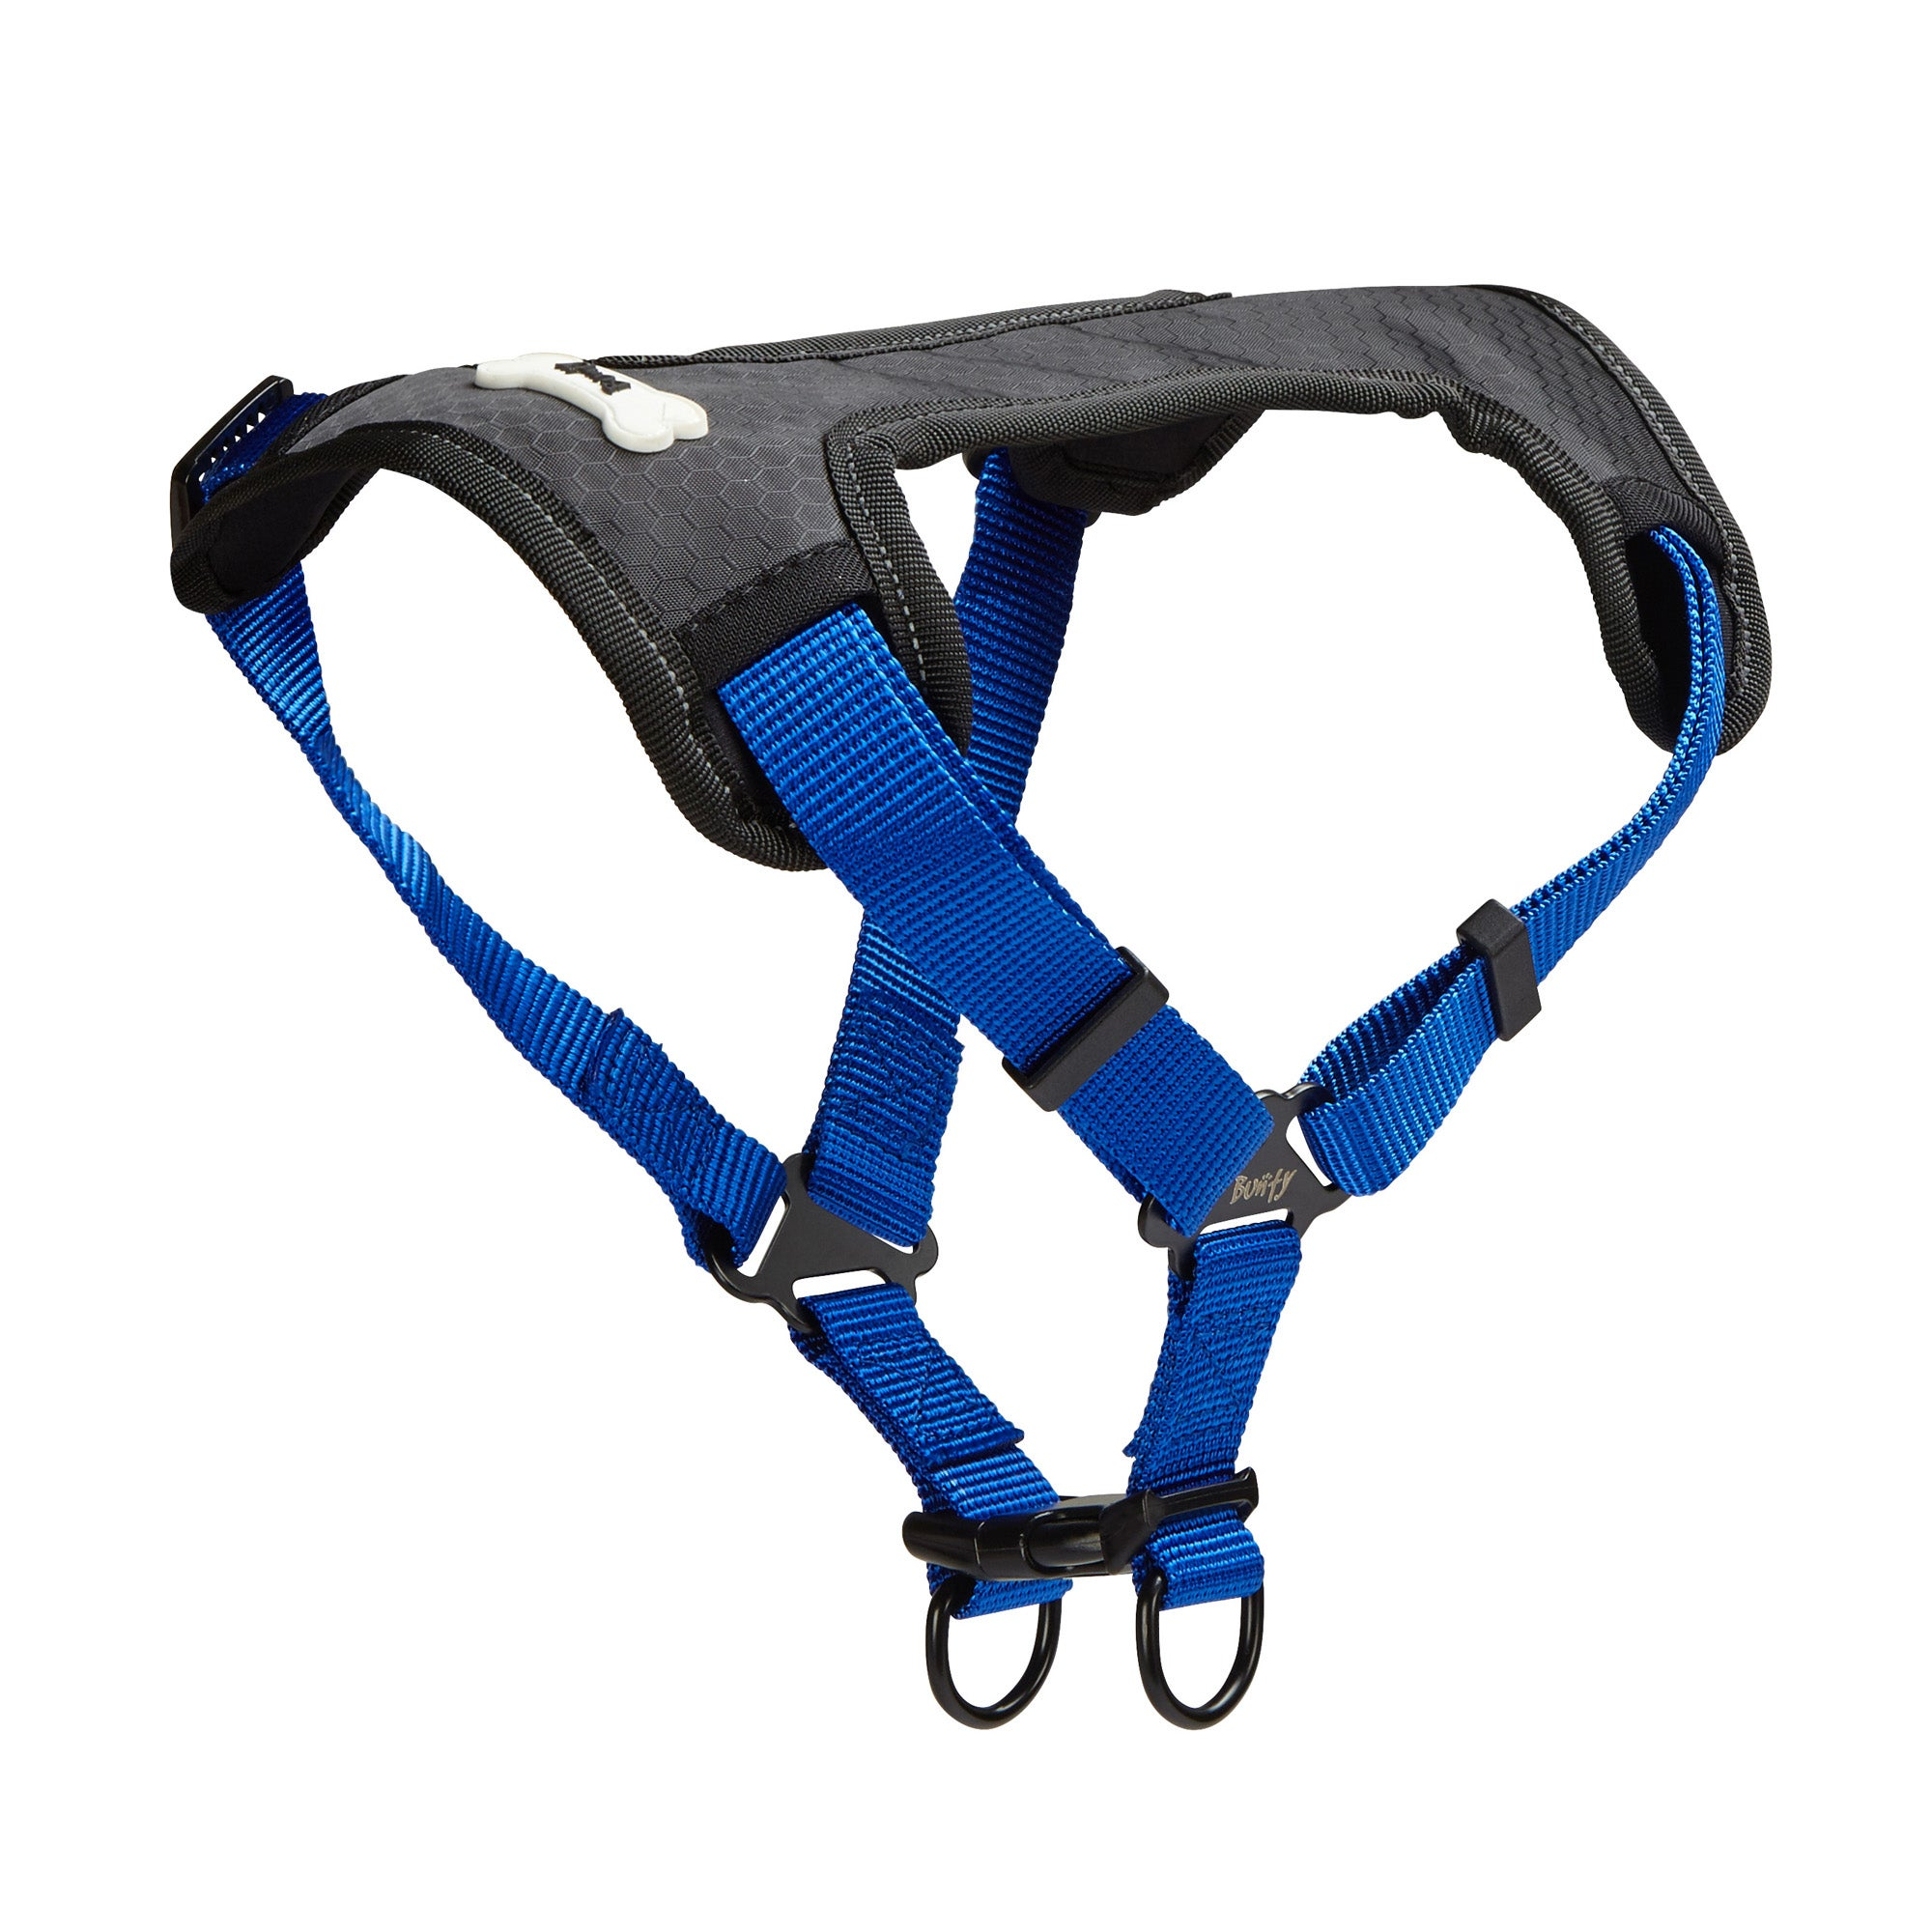 Bunty Blue Strap 'N' Strole Dog Harness Blue